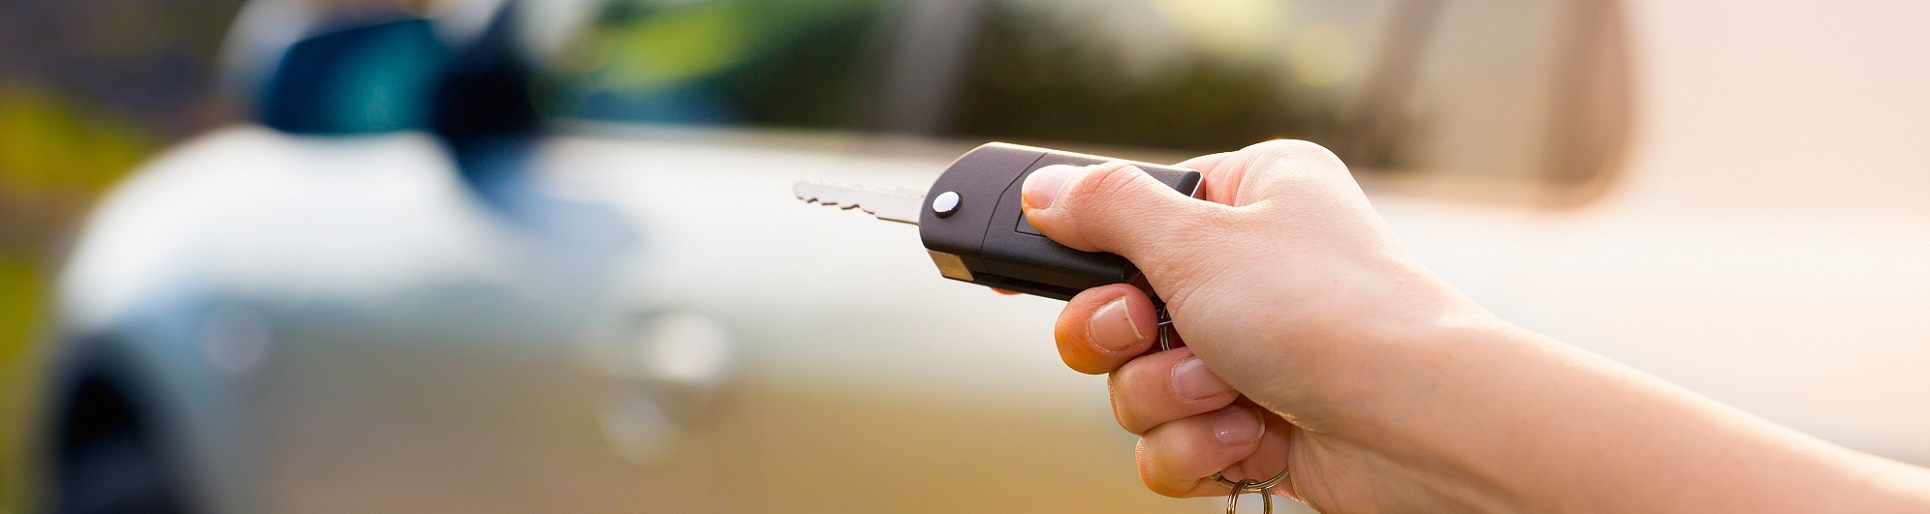 Welcome To Remote Key - Your Best Solution To Lost Keys Or Immobiliser Problems